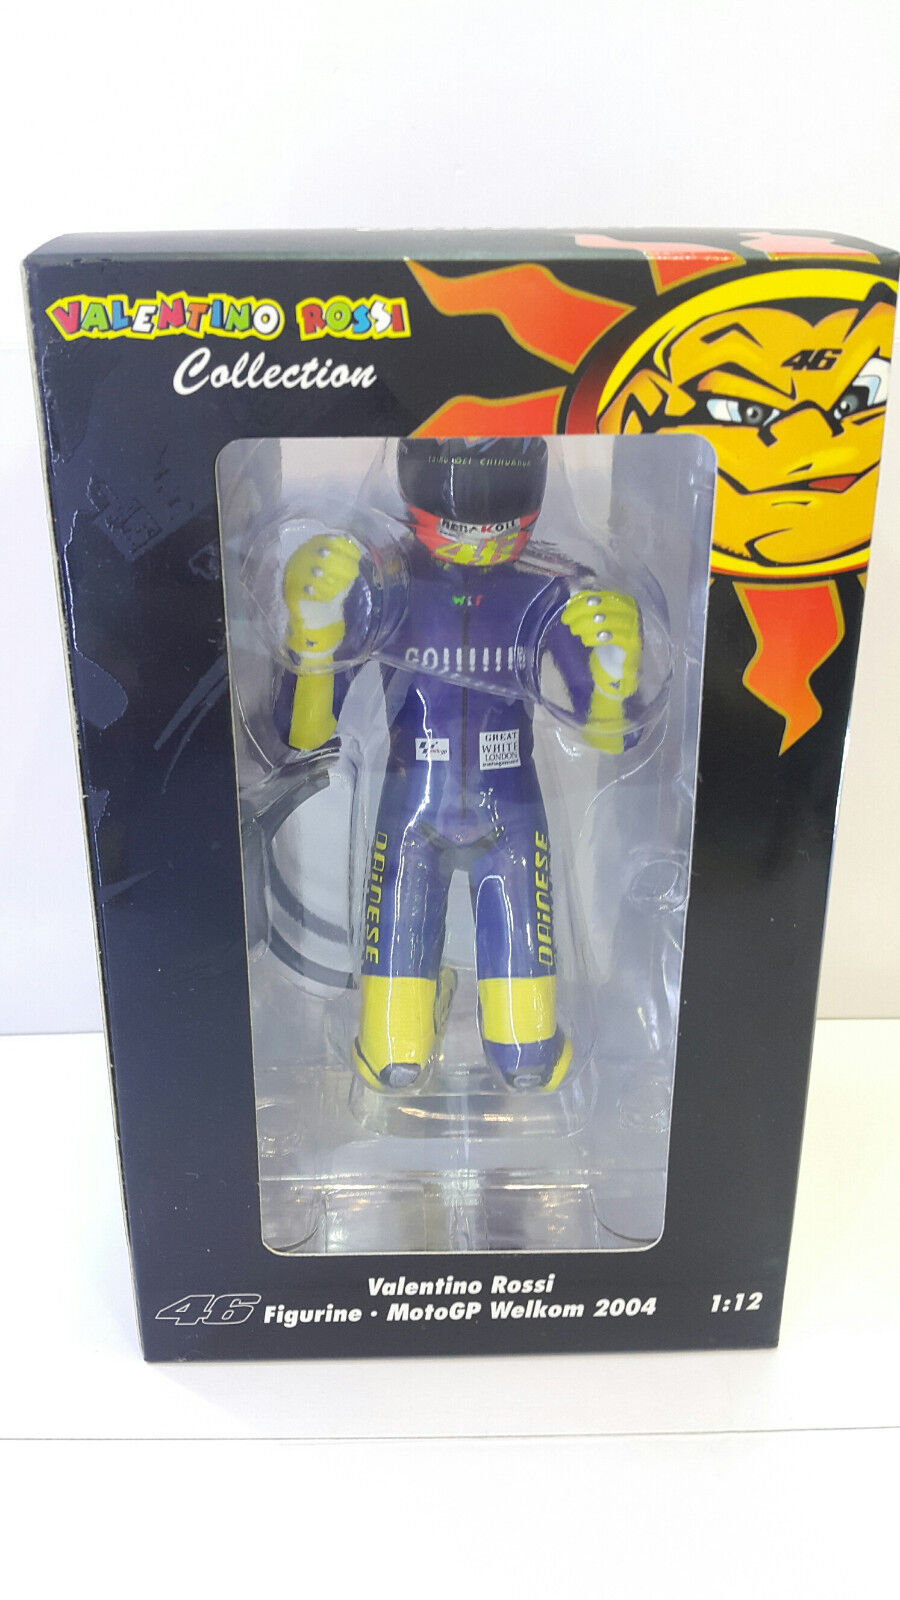 1 12 Minichamps Valentino Rossi Figure MotoGP 2004 The Kiss Welkom South Africa